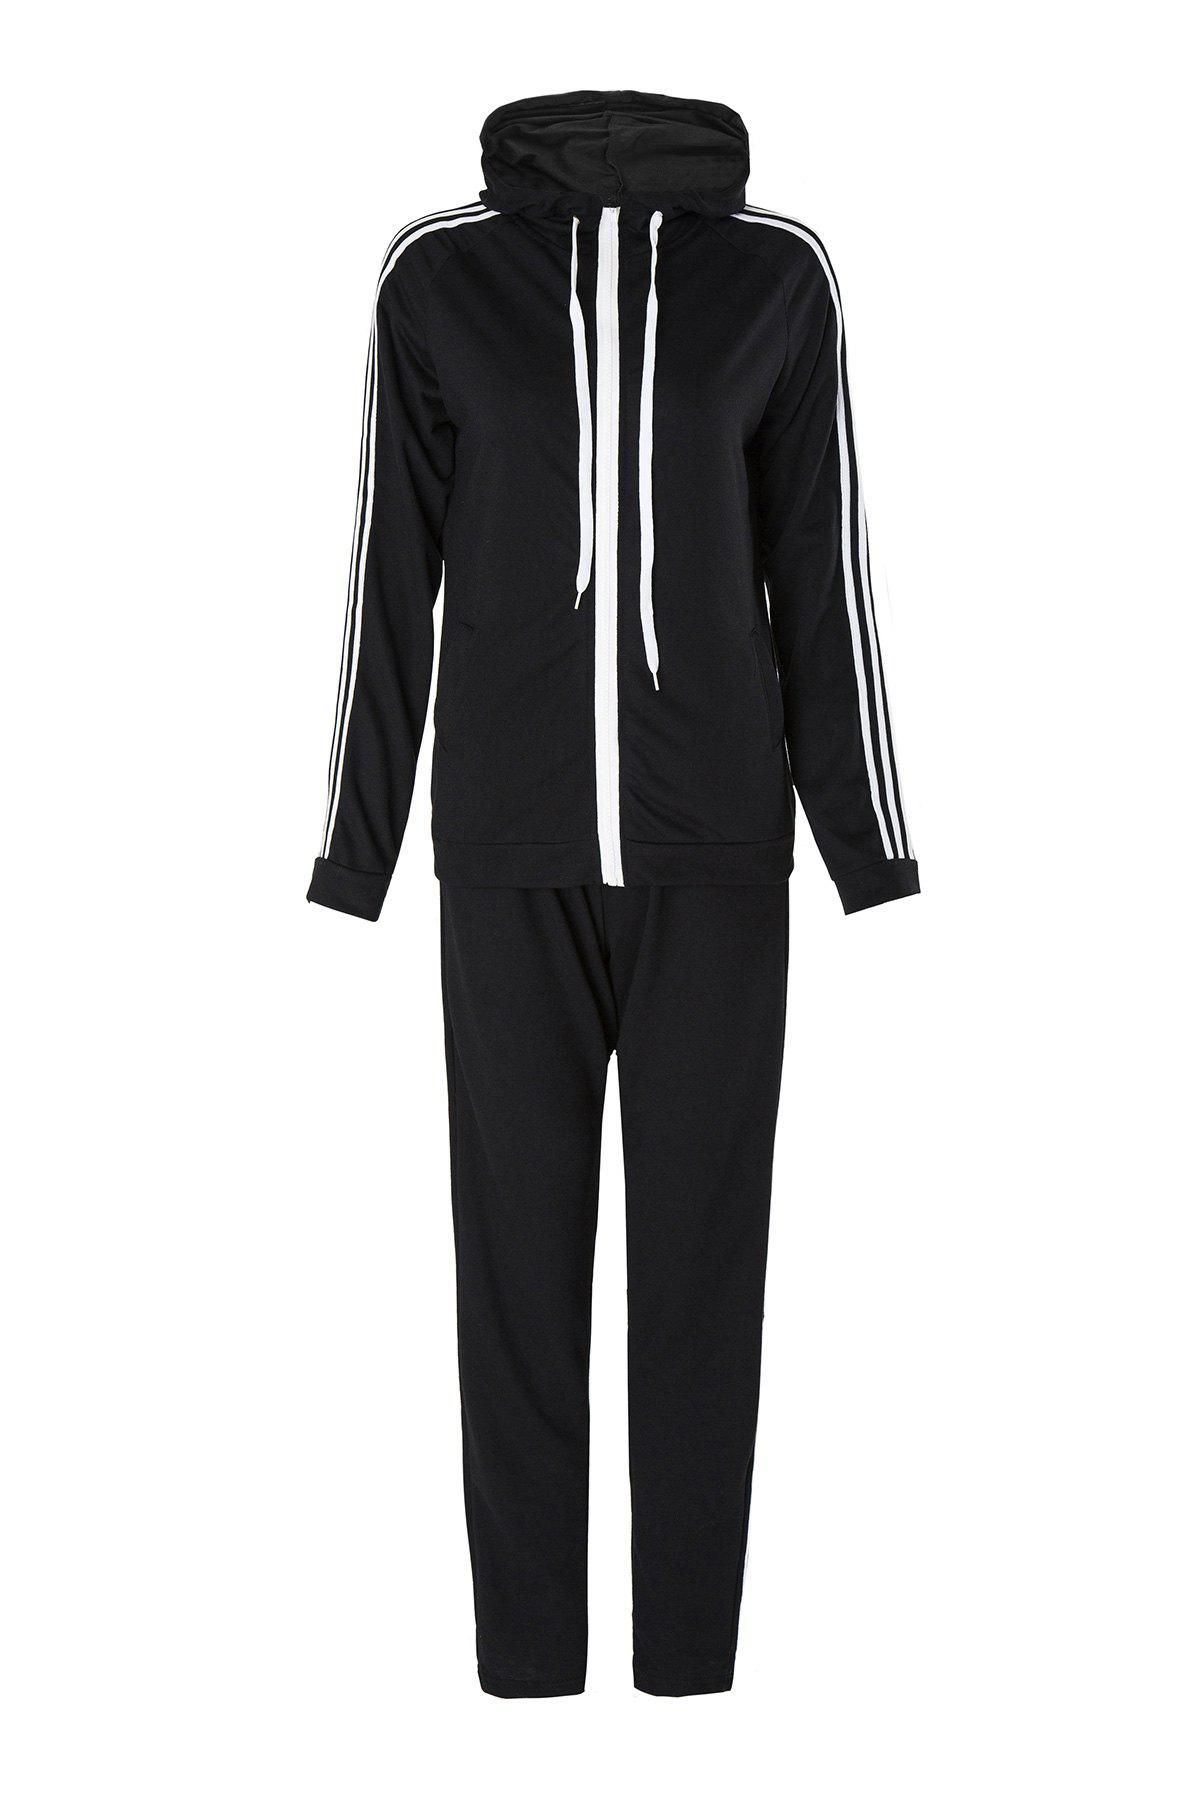 Active Long Sleeve Hooded Striped Jacket + Waist Drawstring Pants Womens Activewear SuitWomen<br><br><br>Size: M<br>Color: BLACK